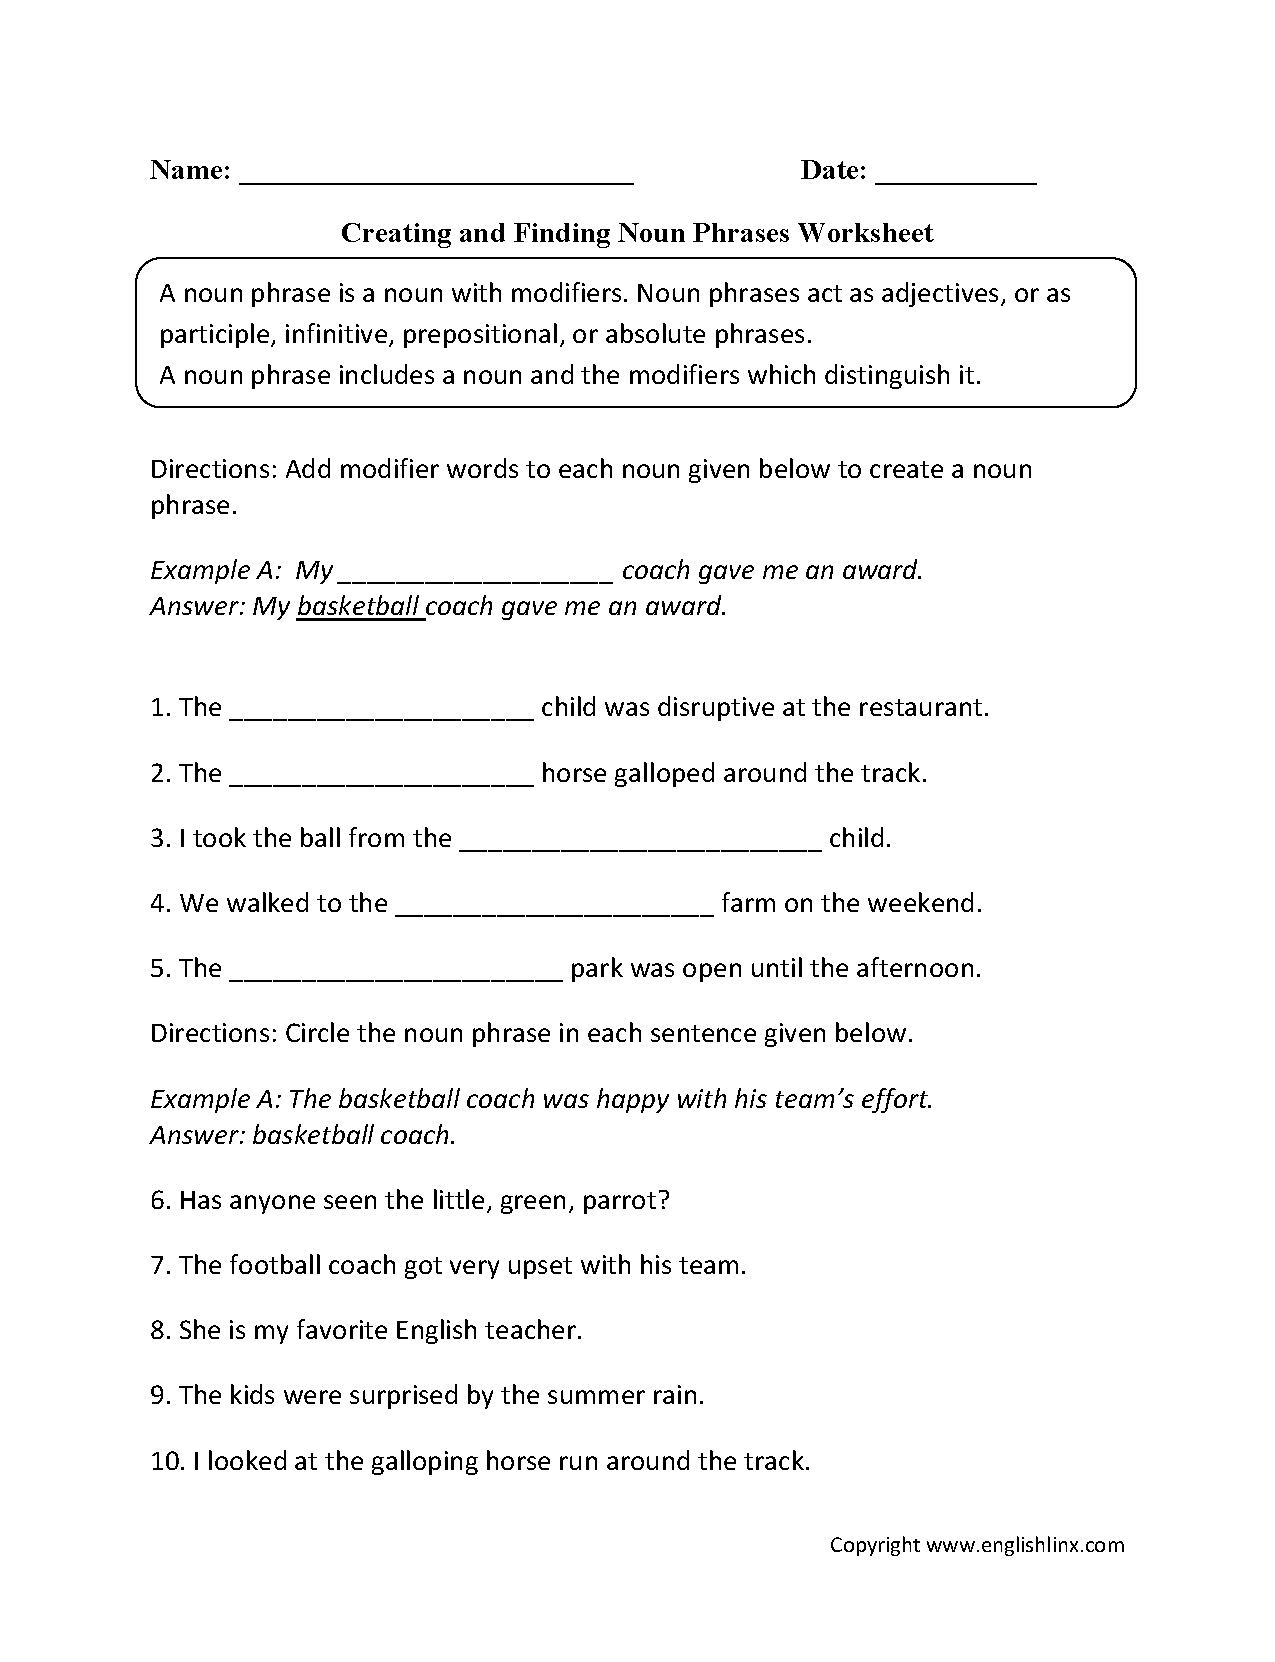 worksheet Verb Phrase Worksheet nouns worksheets noun phrases worksheets